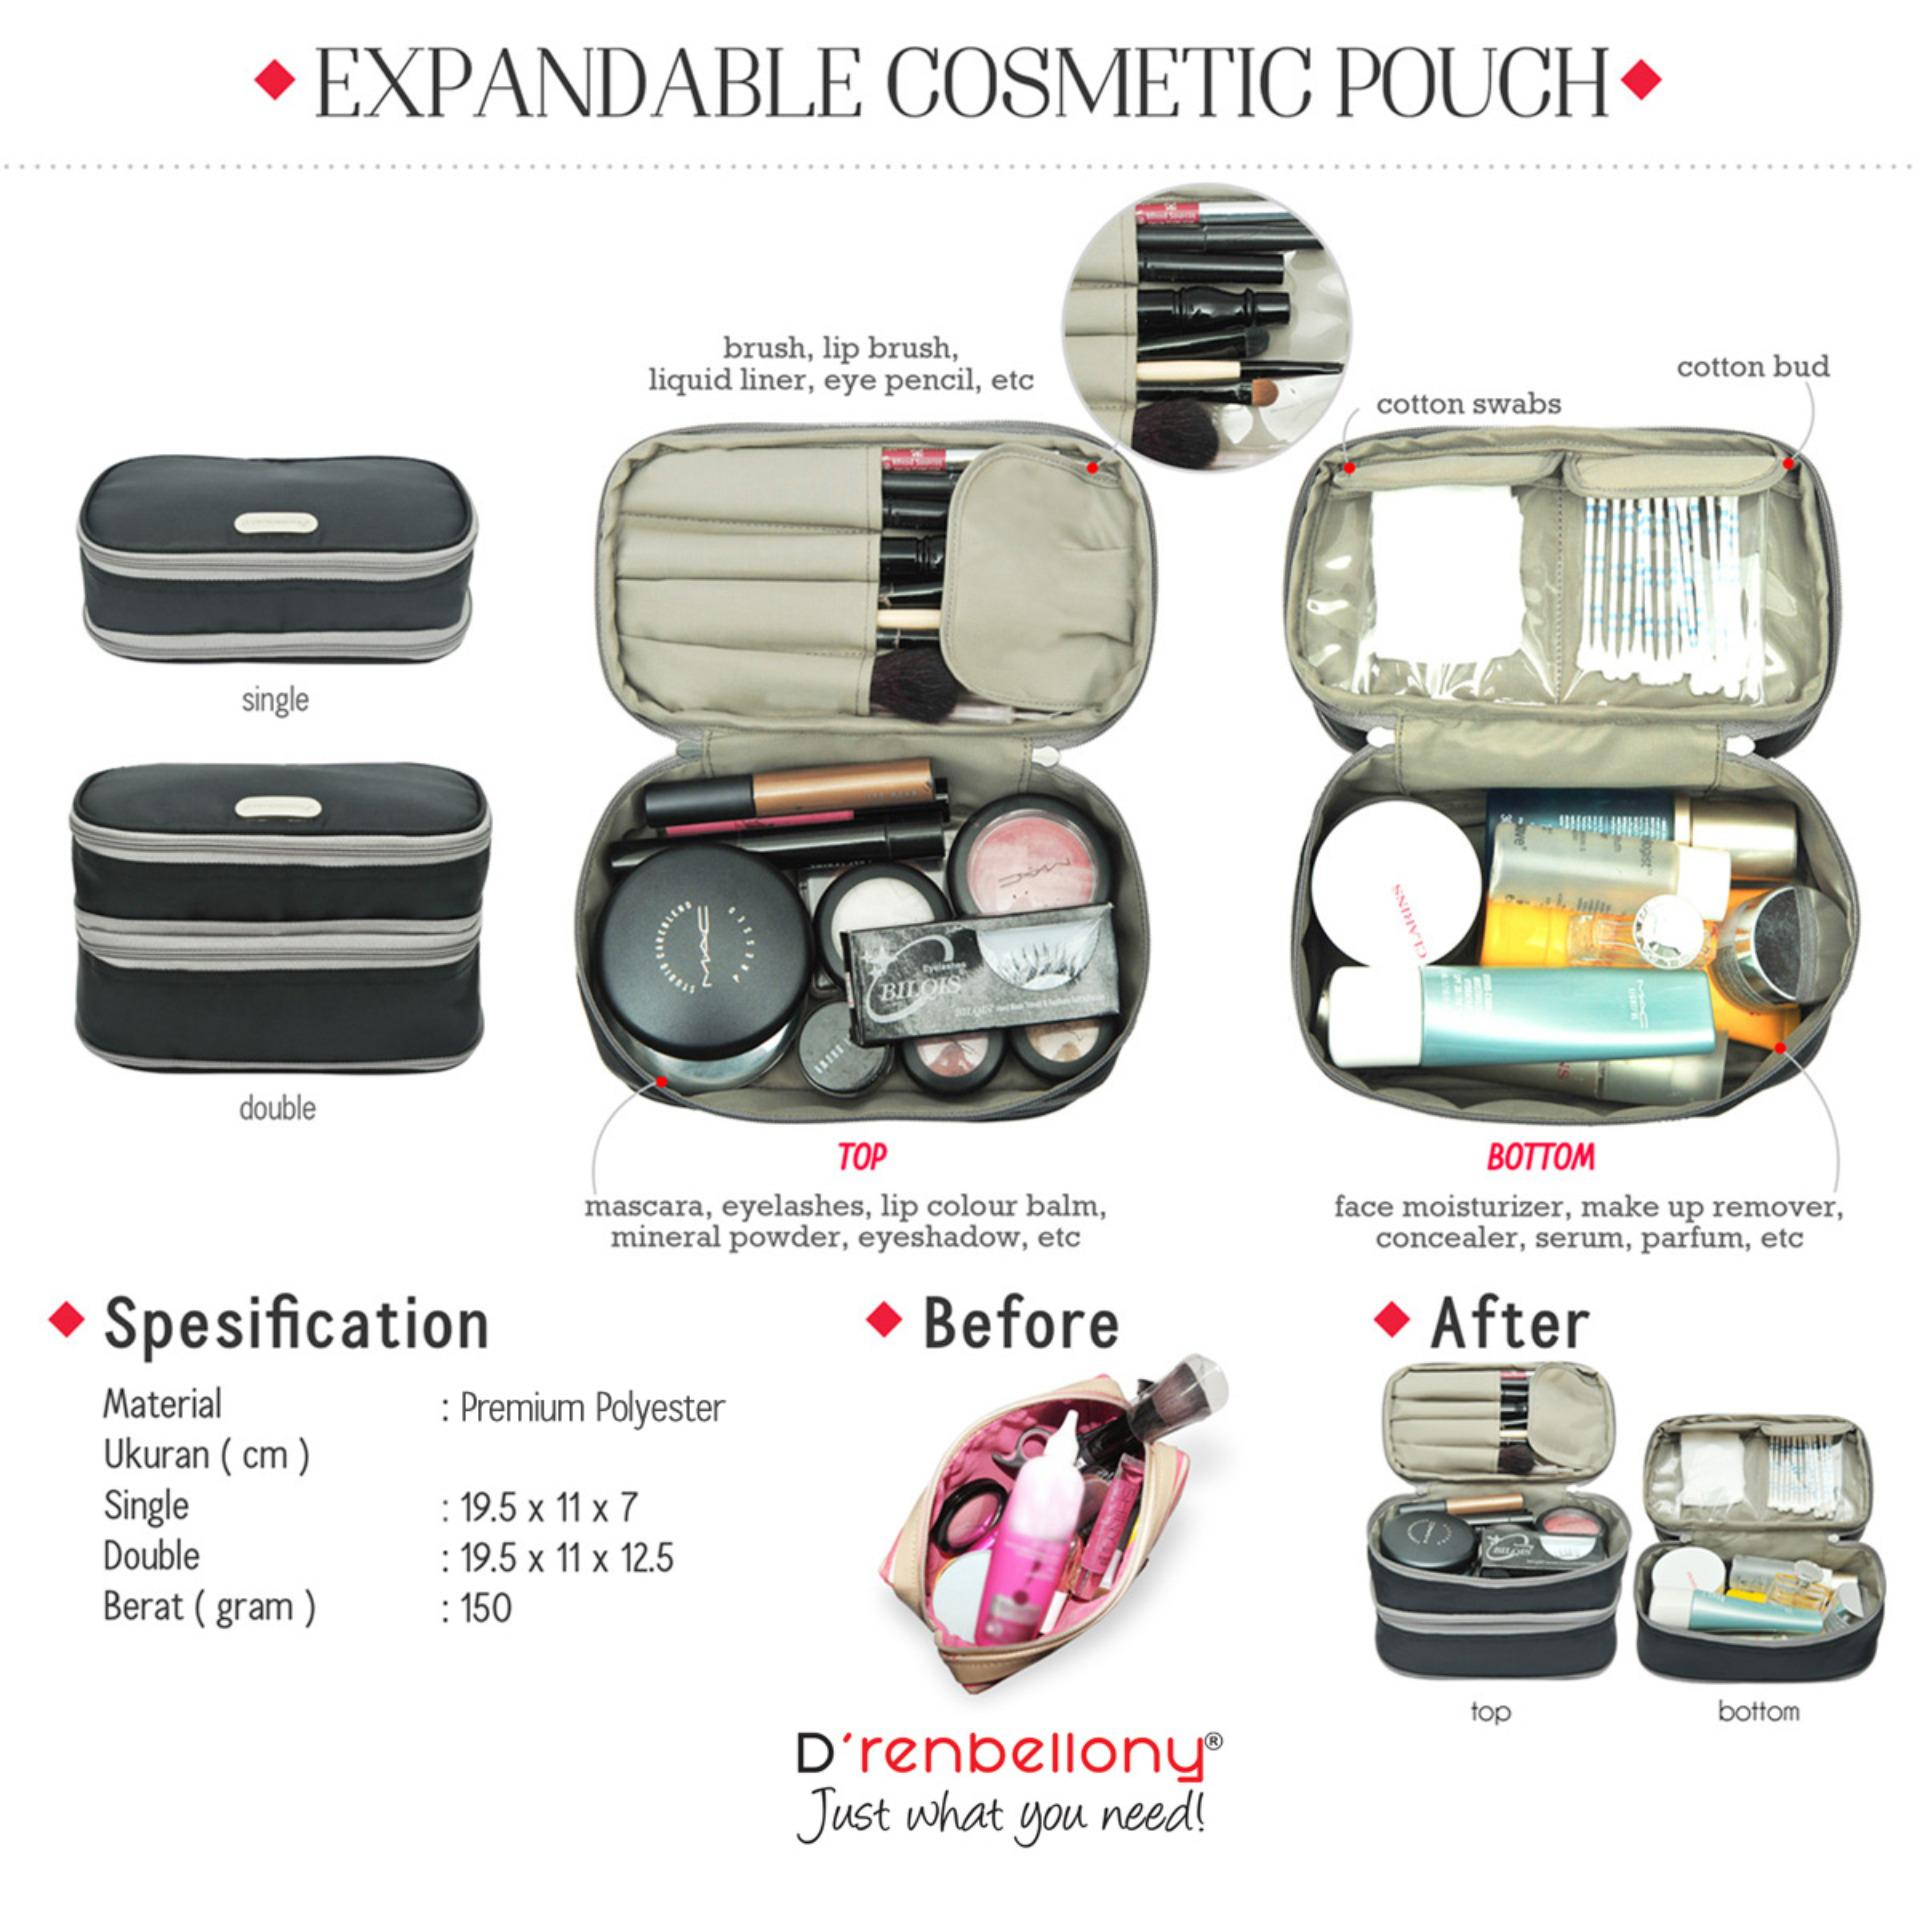 Tas Makeup Polkadot; Page - 2. D renbellony Expandable Cosmetic Pouch .